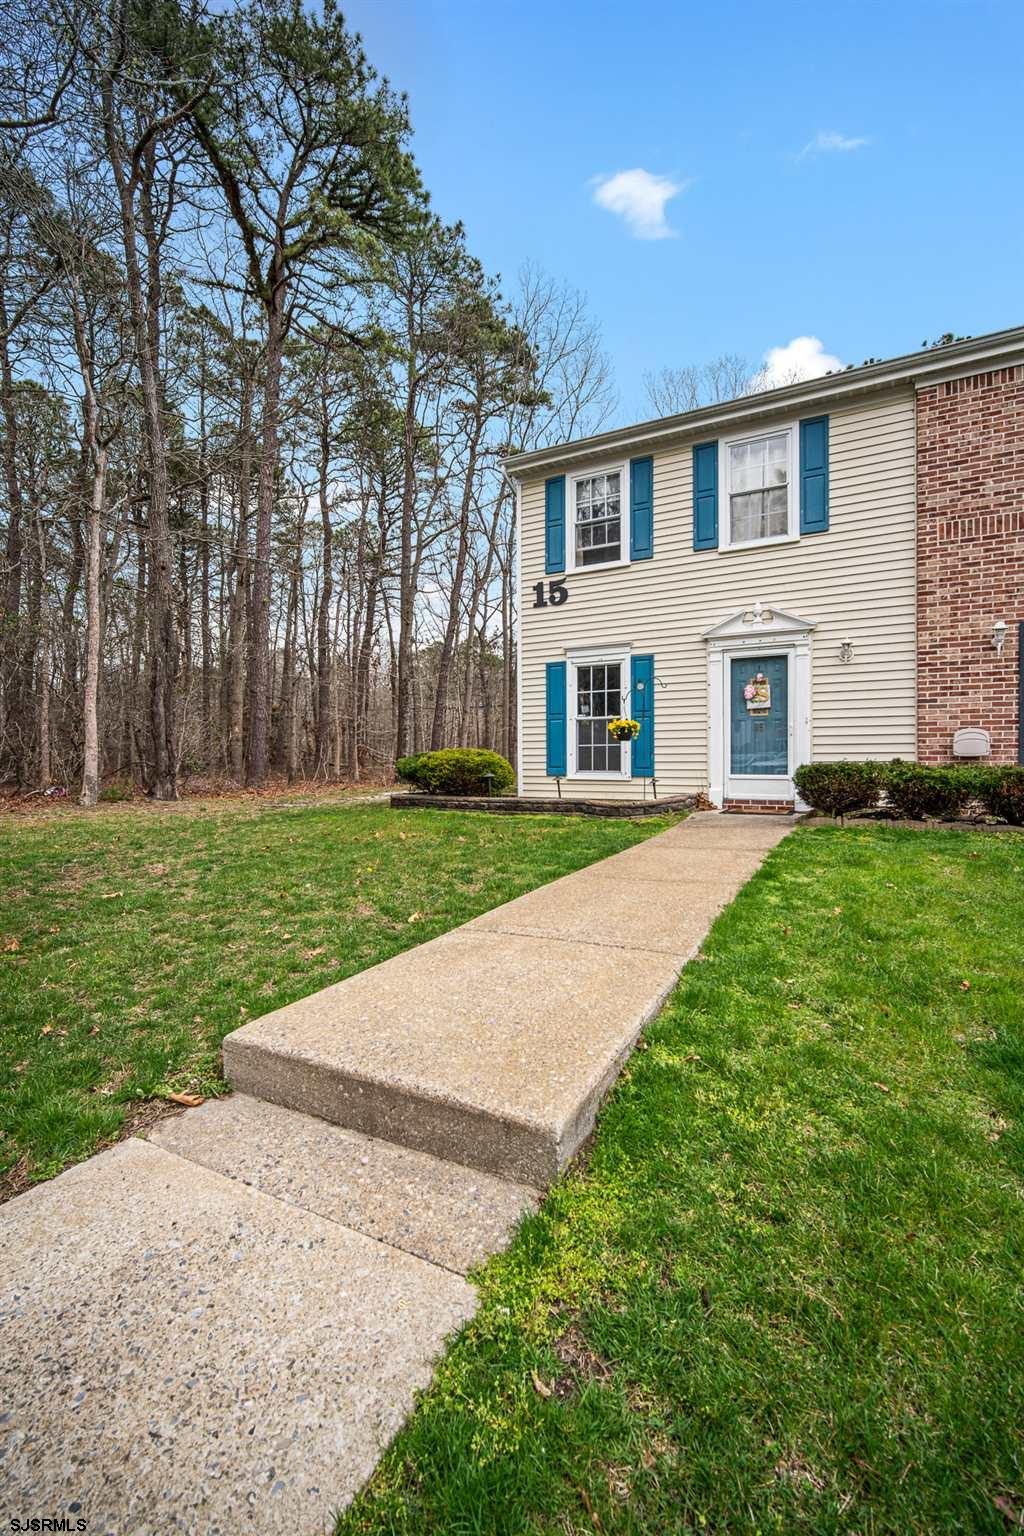 ***GALLOWAY NEW LISTING ALERT***2 BED 2.5 BATH END UNIT TOWNHOME***UPDATED KITCHEN, HVAC***3 PANEL S